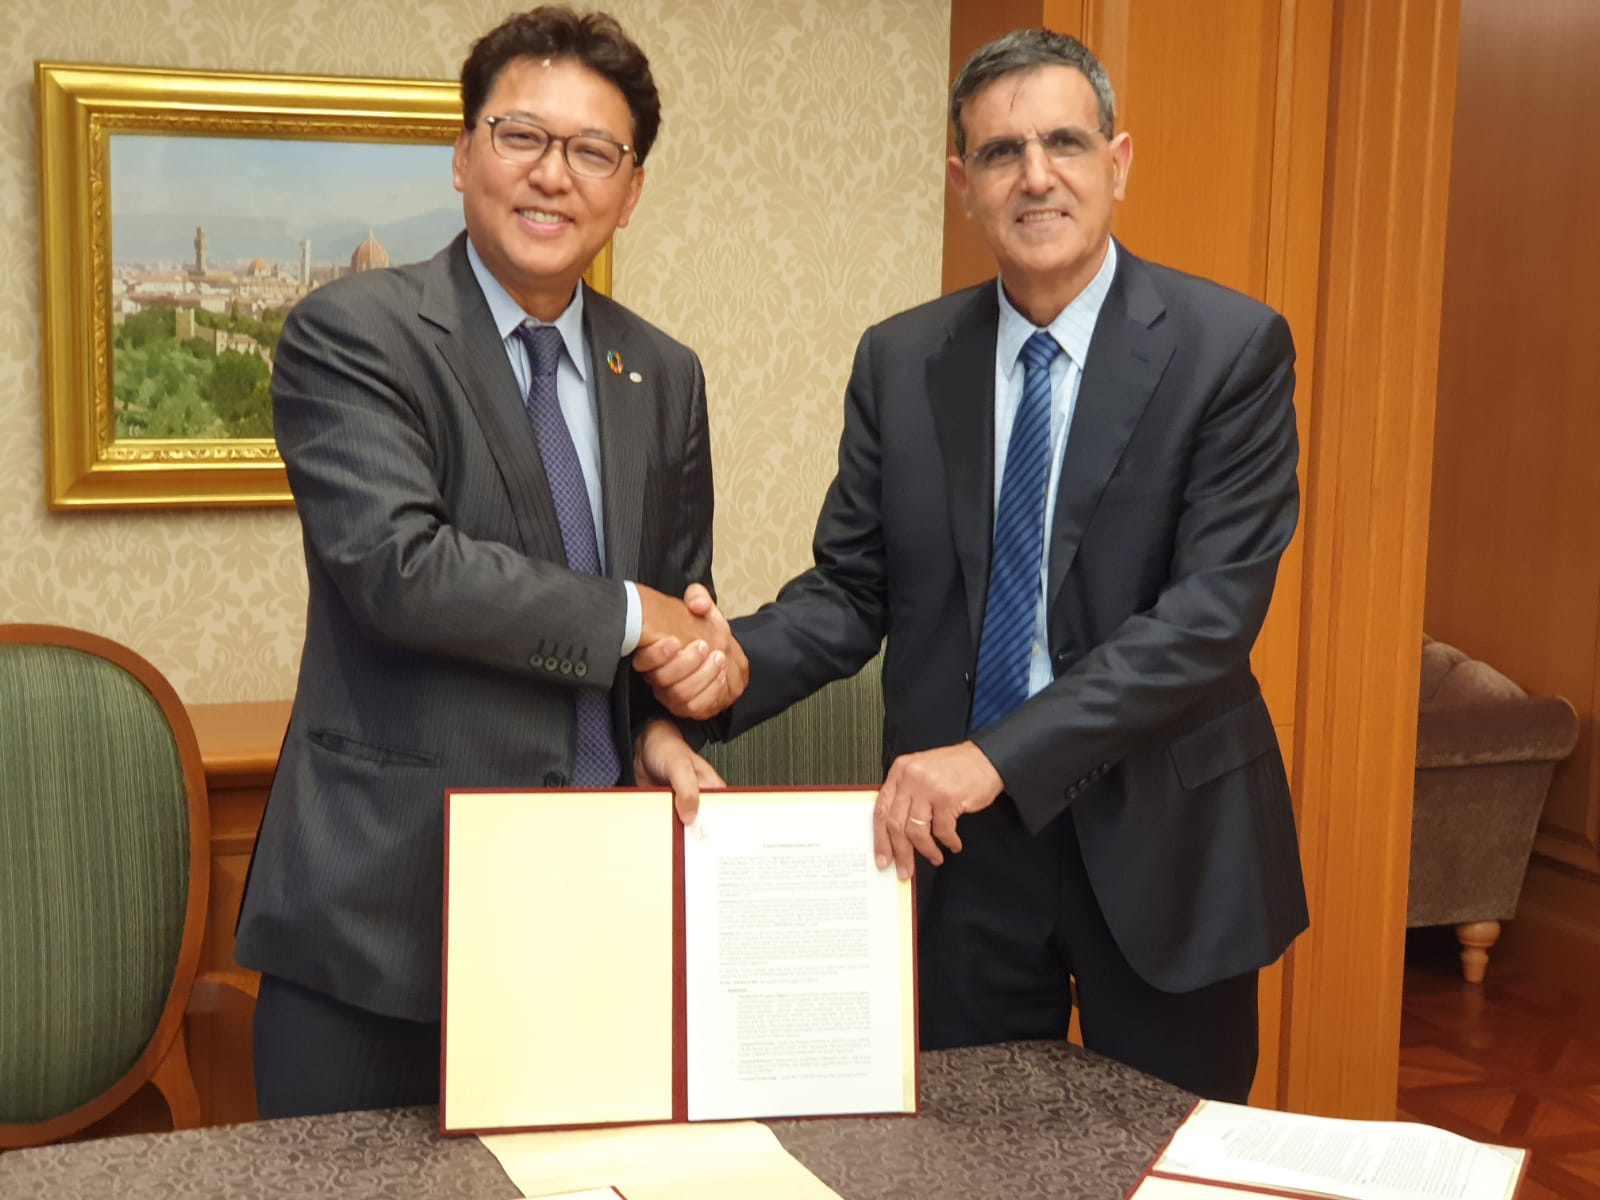 DENSO and Kitov.ai signed a Partnership Agreement for adopting Kitov's Smart Visual Inspection Technology across DENSO's manufacturing lines.